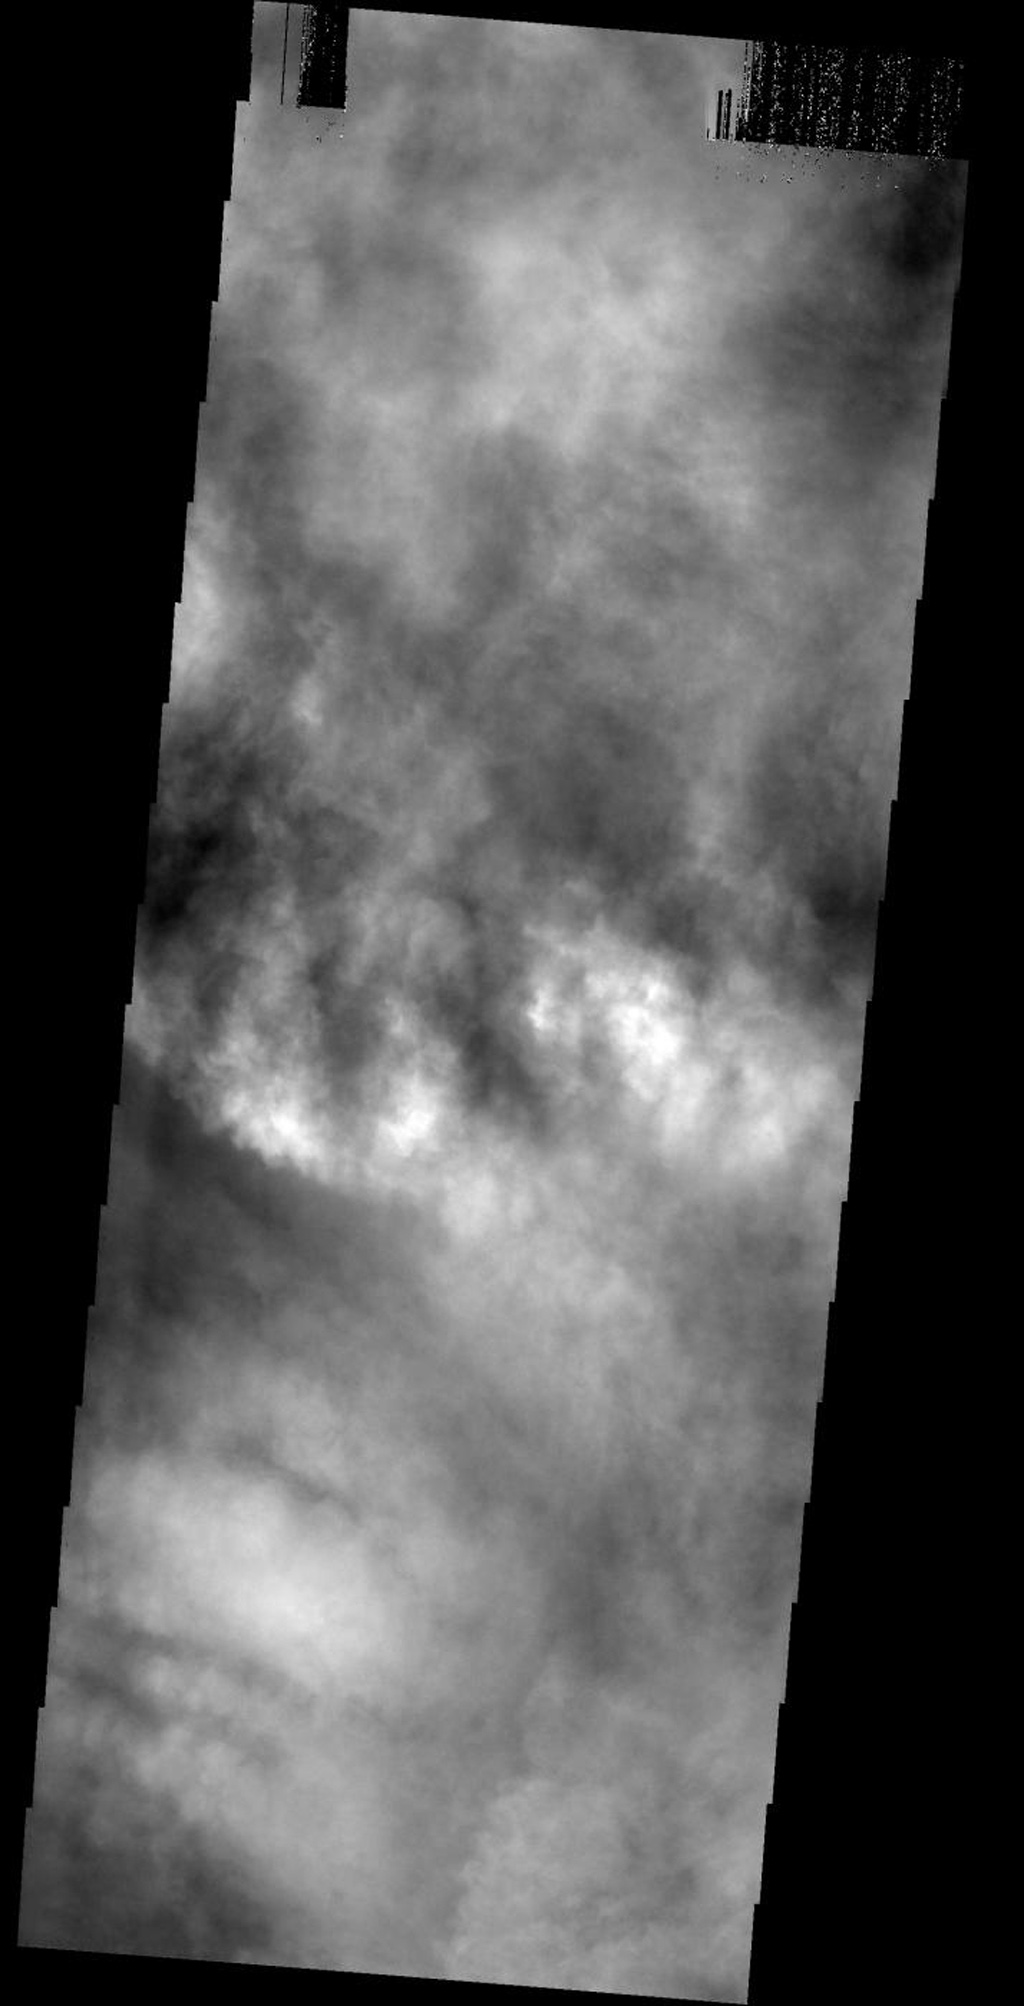 The surface of Mars is completely hidden from view by clouds as seen by NASA's 2001 Mars Odyssey spacecraft.